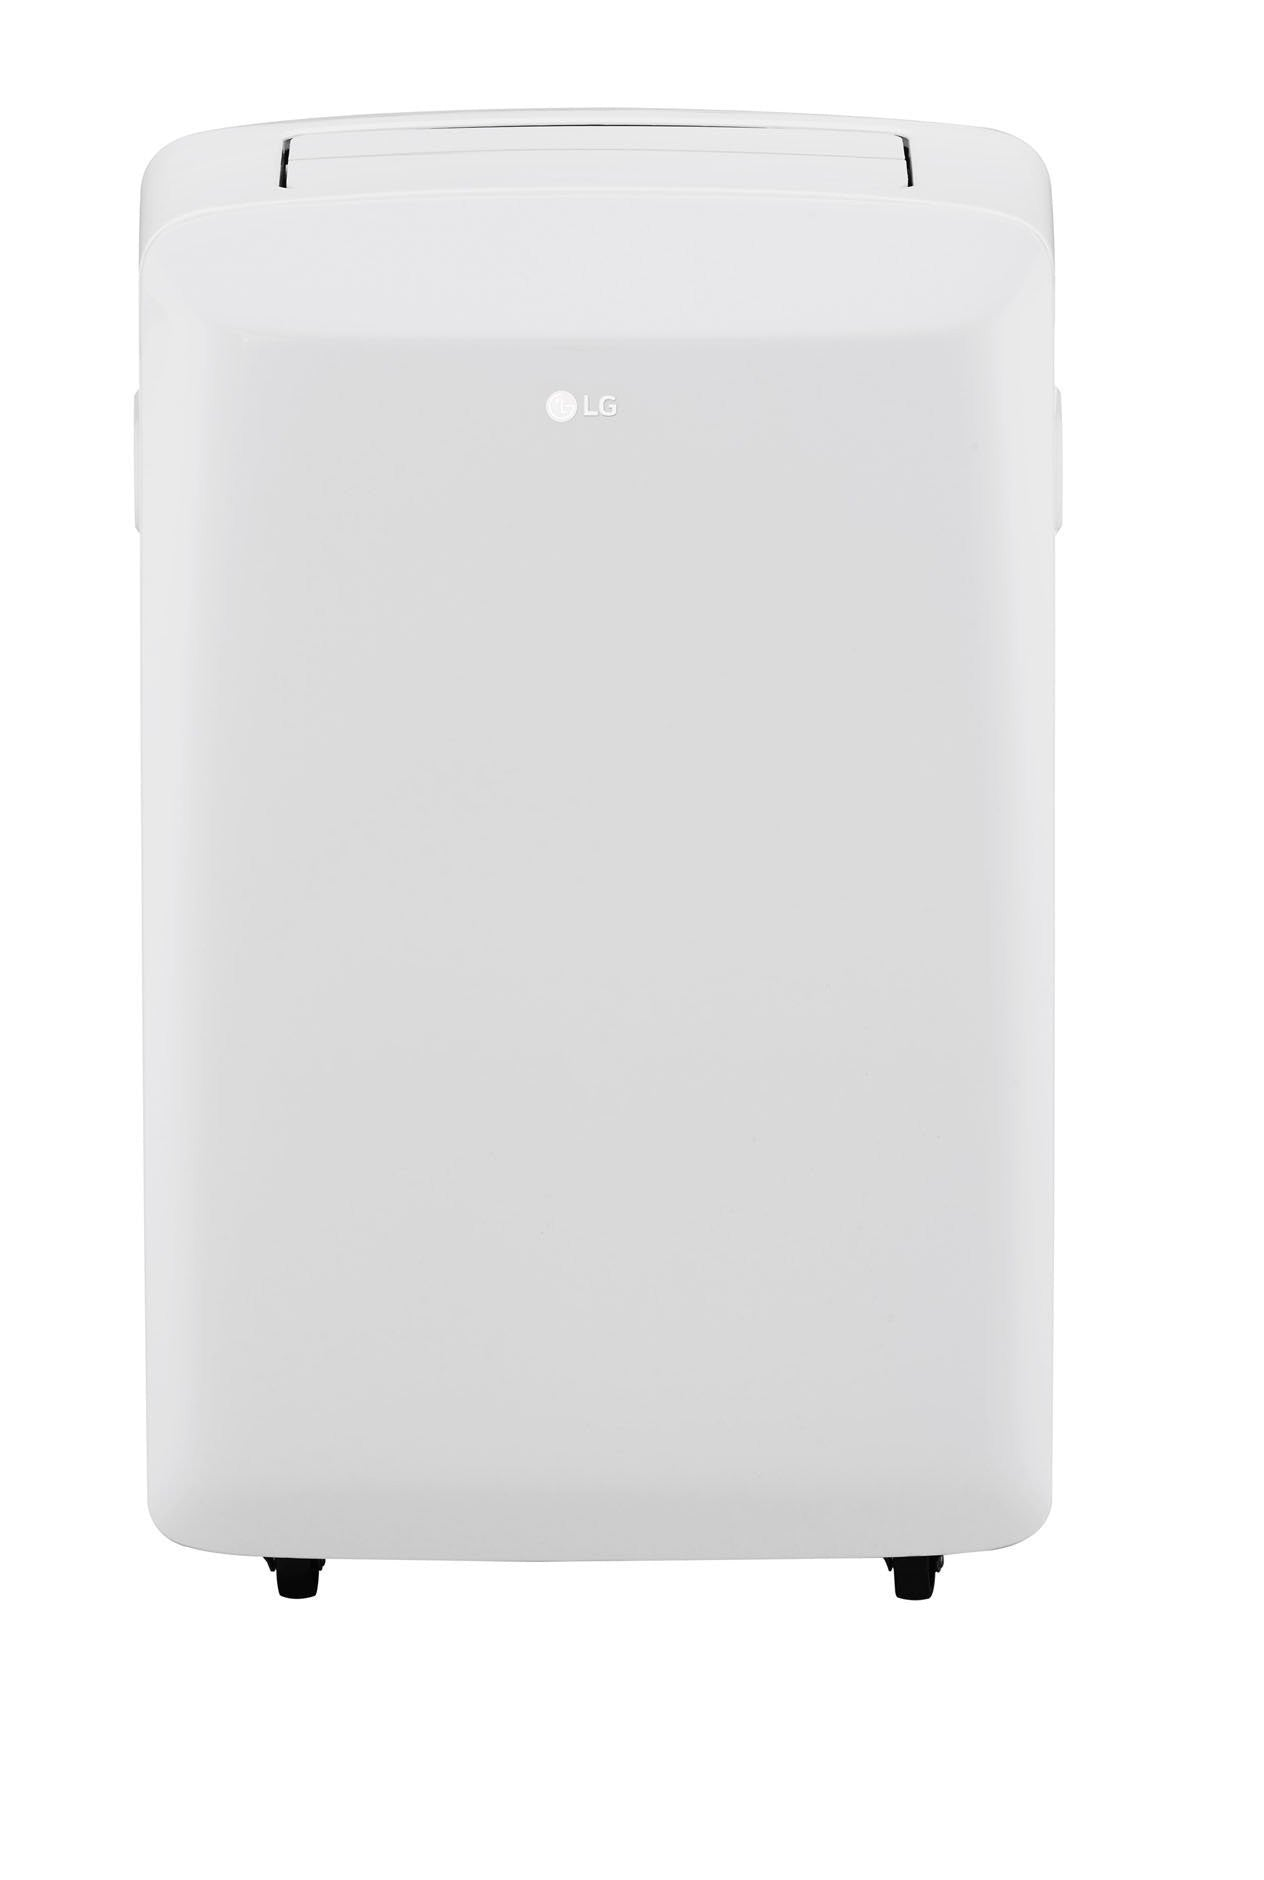 Whynter 12000 btu portable air conditioner platinum arc 12s lg lp0817wsr 8000 btu 115v portable air conditioner with remote control in white portable air conditioner fandeluxe Choice Image